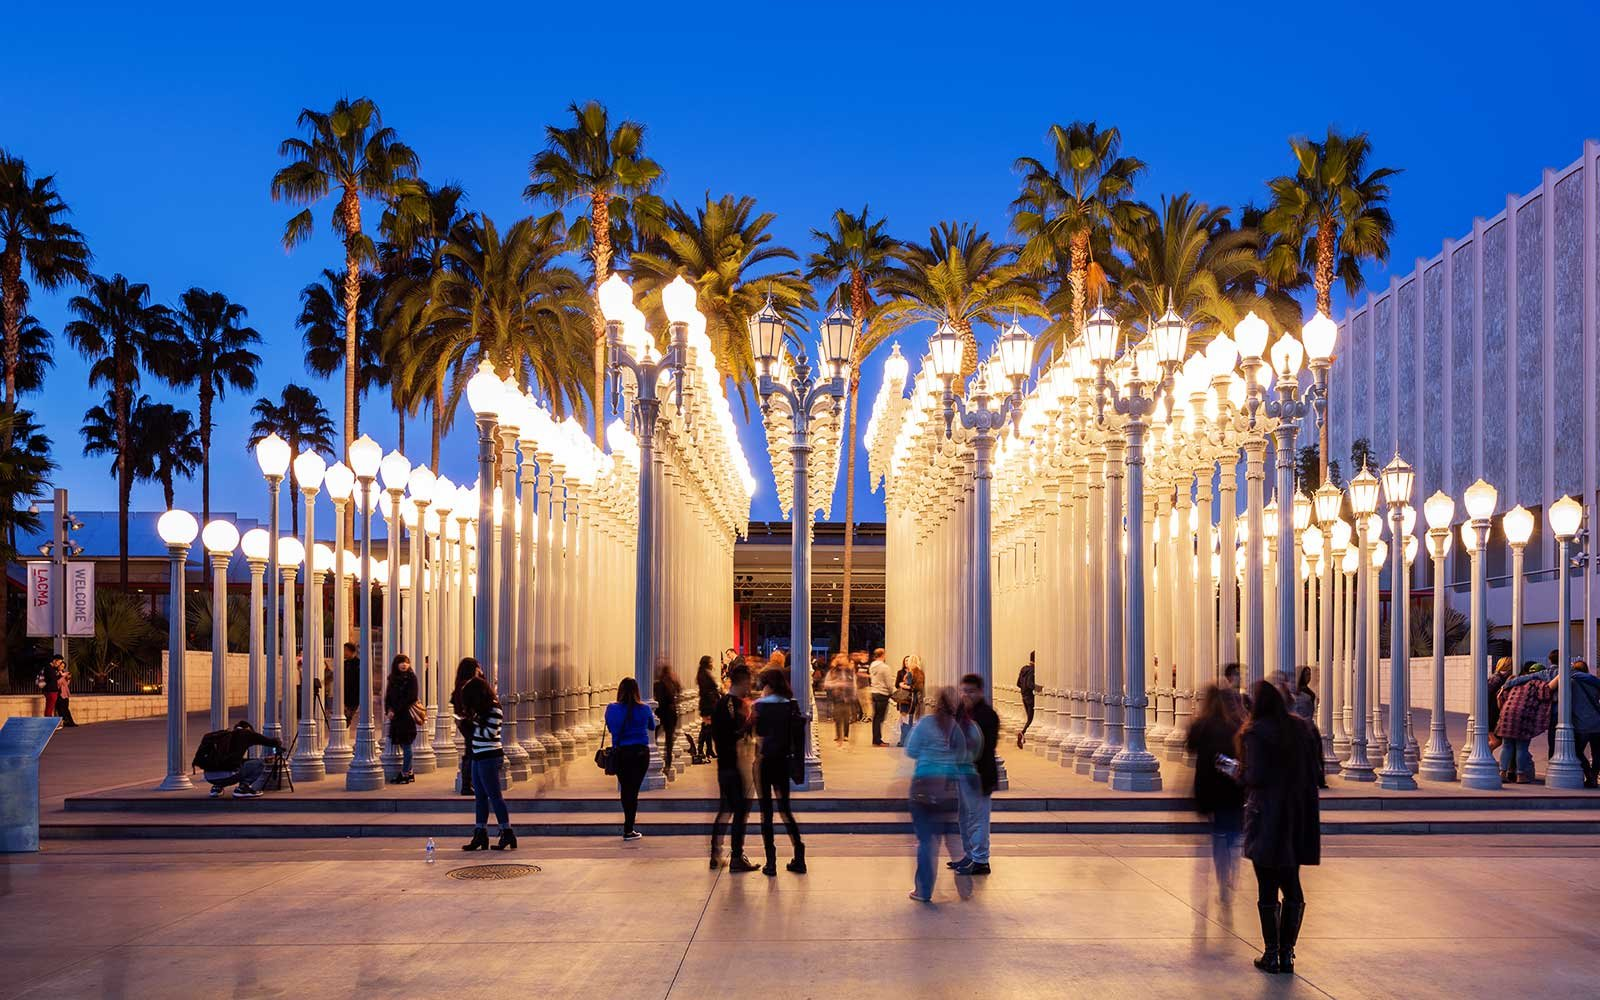 An Indonesian Theme Park Must Destroy Its Knockoff of Chris Burden's 'Urban Light' After Losing a Suit Brought by the Artist's Estate | Artnet News